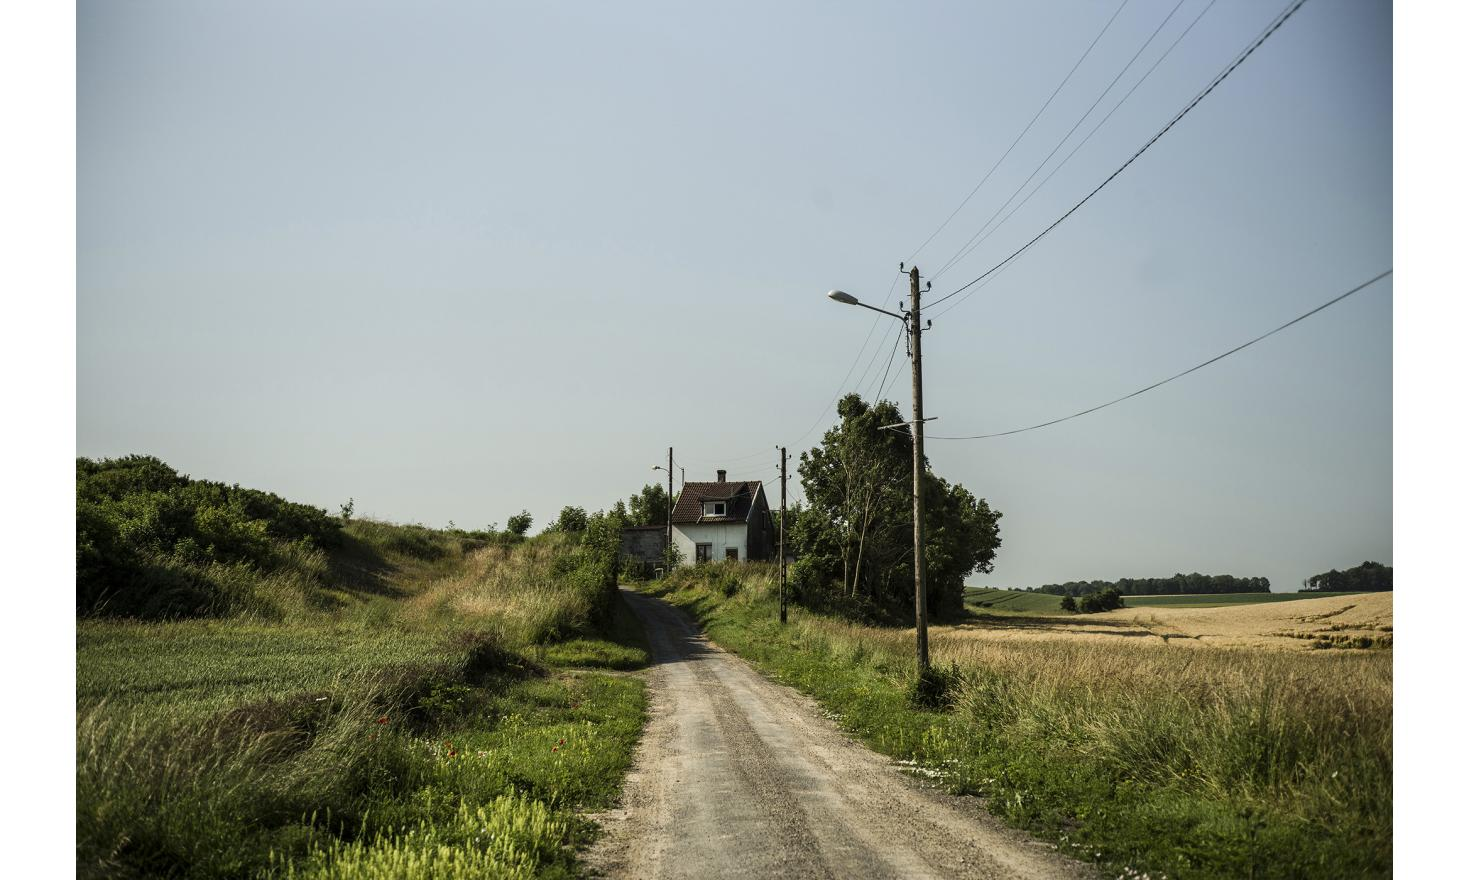 Berteaucourt-les-Danes , which is about 30kms far from Amiens. 1160 peoples live in the village. Here isa way to an isolated house.